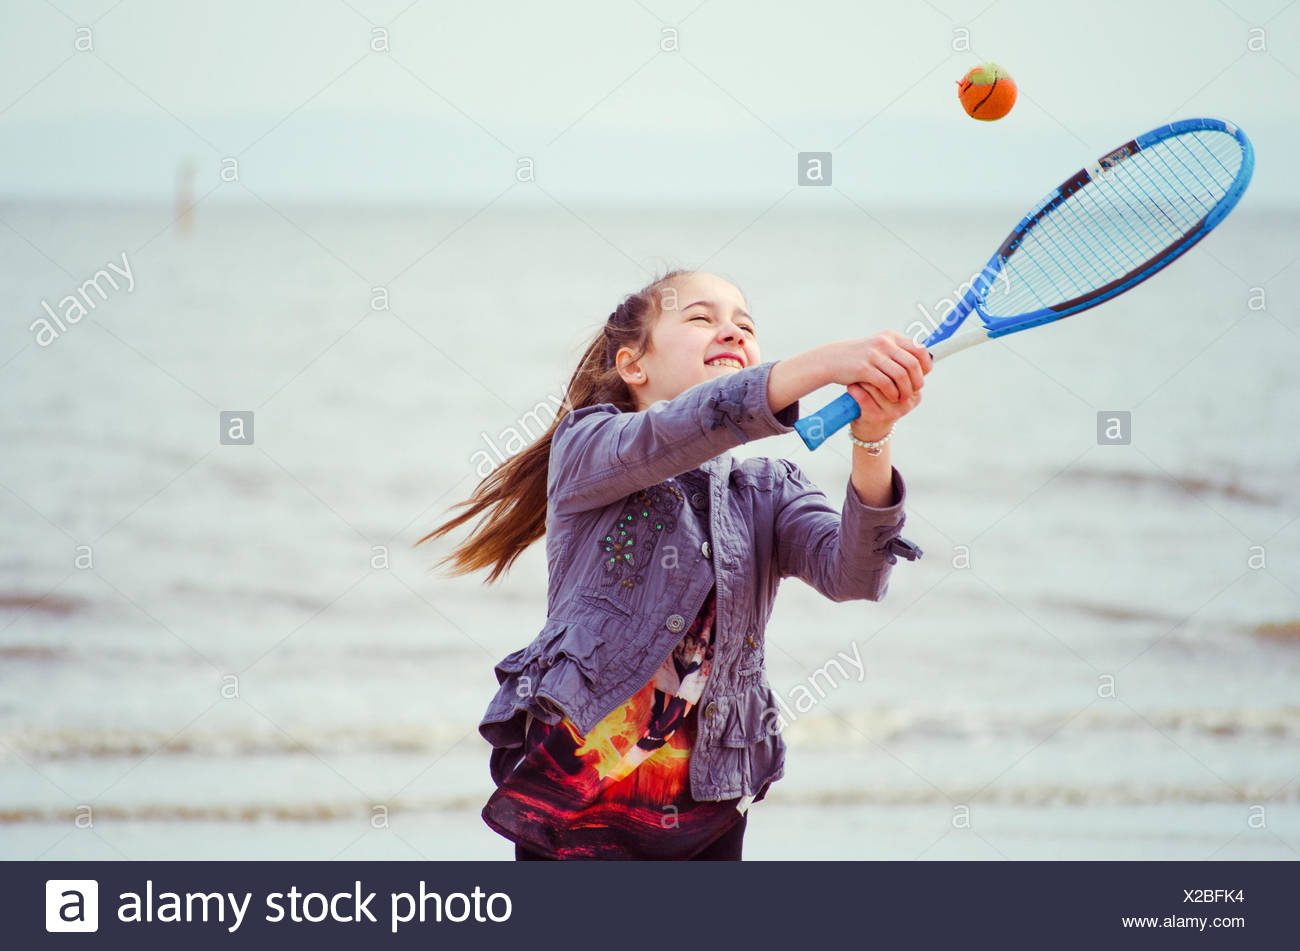 Girl playing tennis on the beach - Stock Image